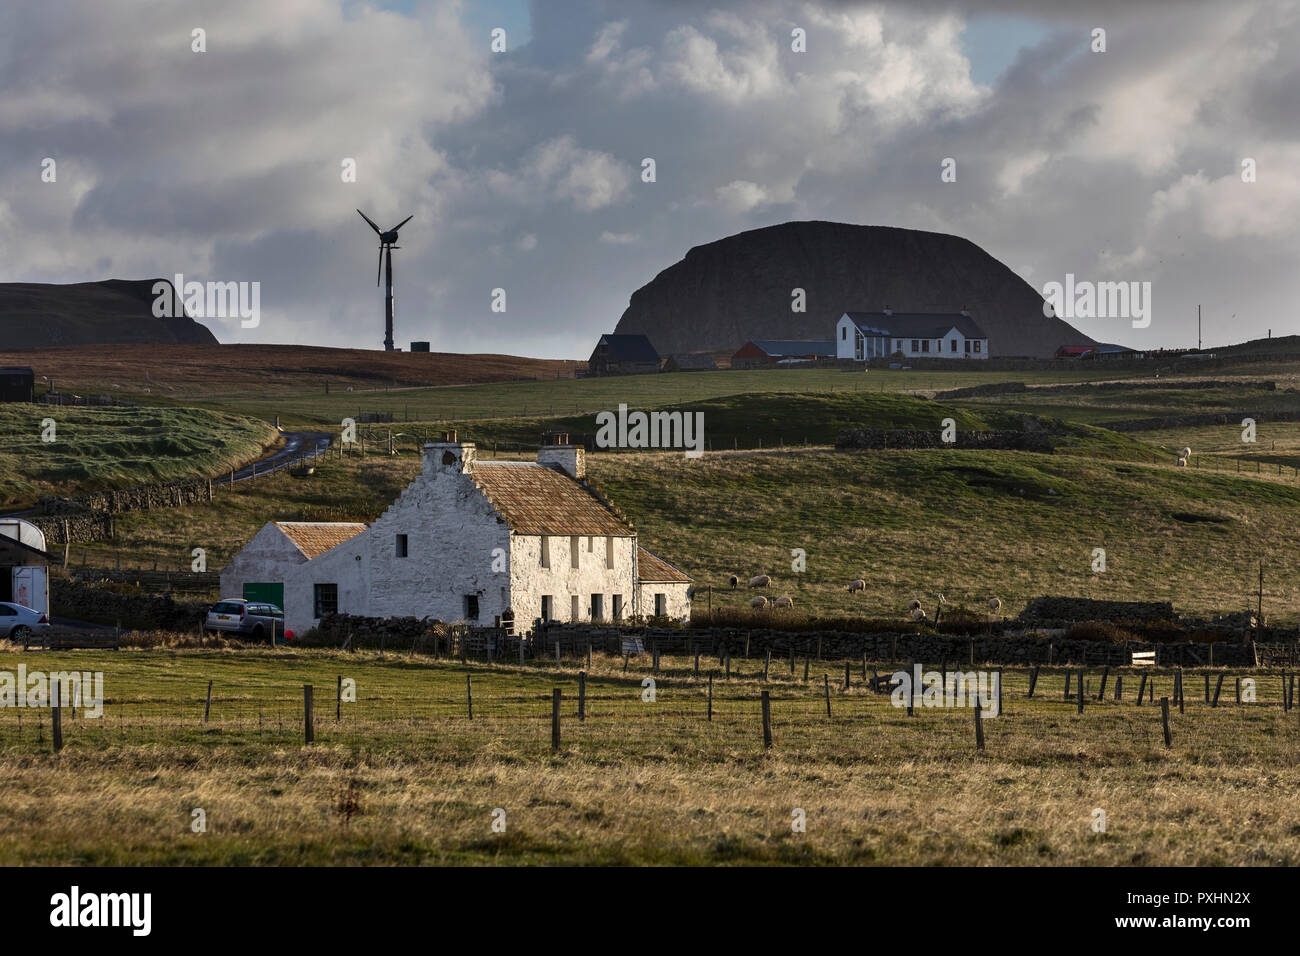 Fair Isle showing one of the new wind turbines and croft houses - Stock Image